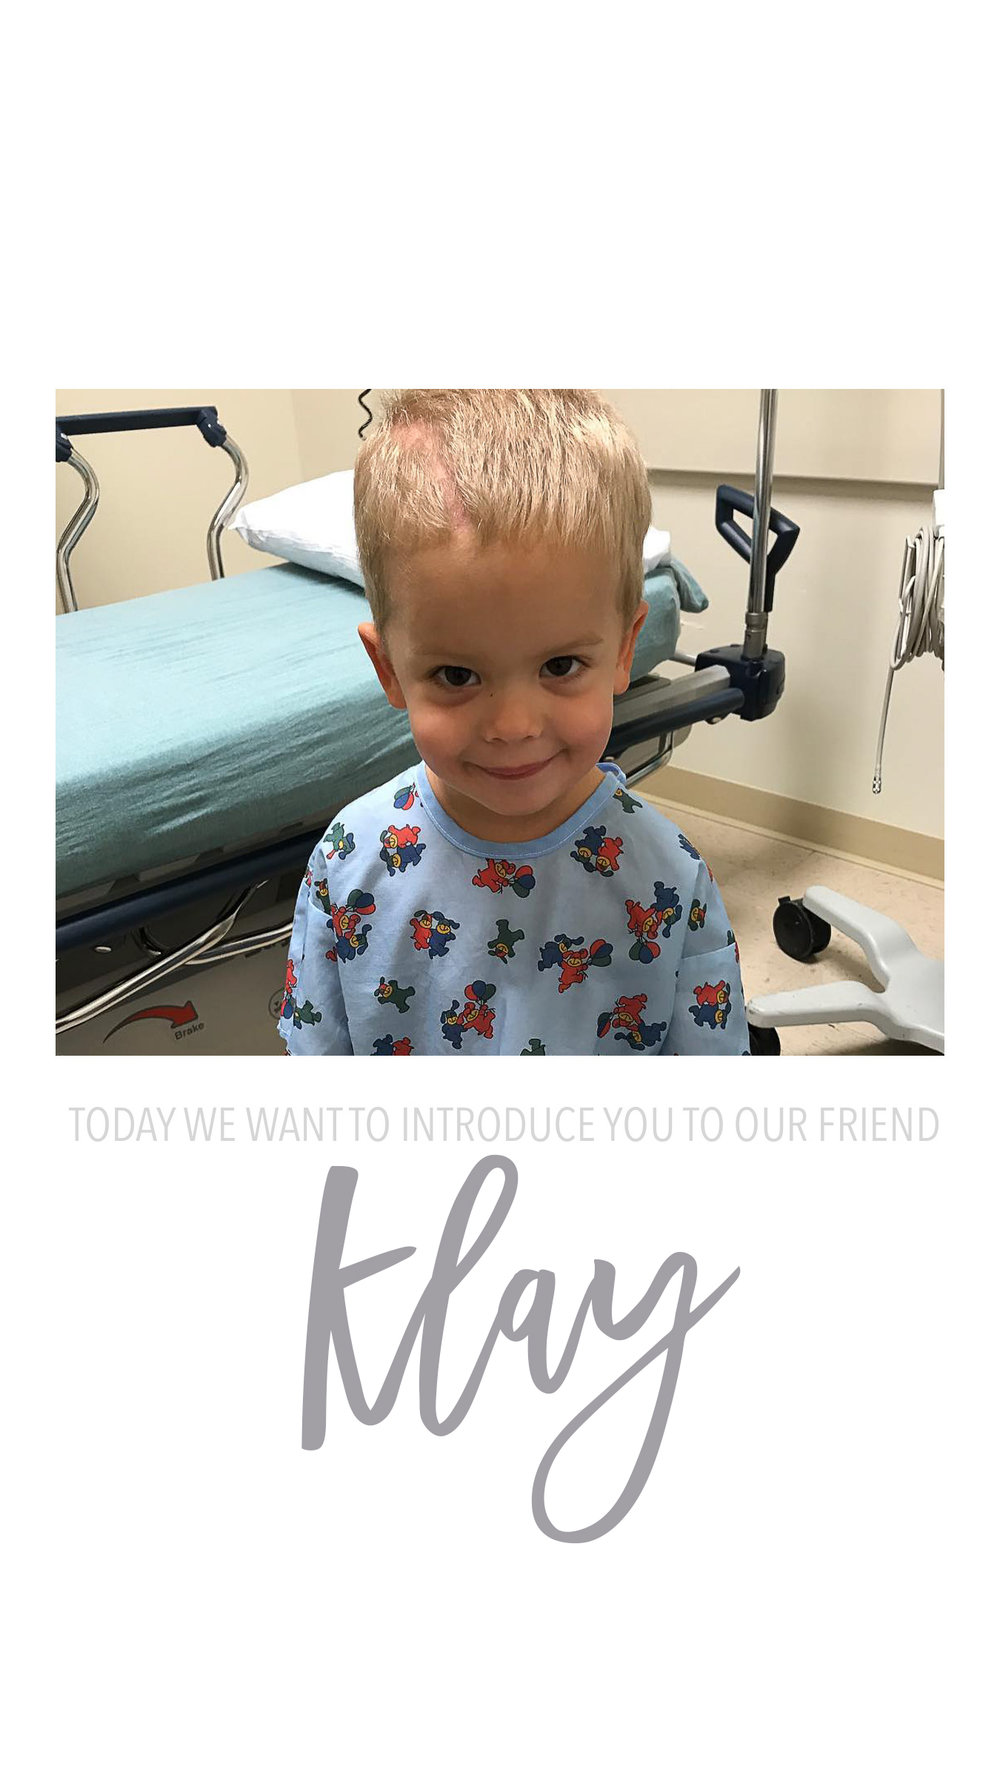 Klay is 2 years old. Klaywas diagnosed with with grade 4 glioblastoma on December 28 -